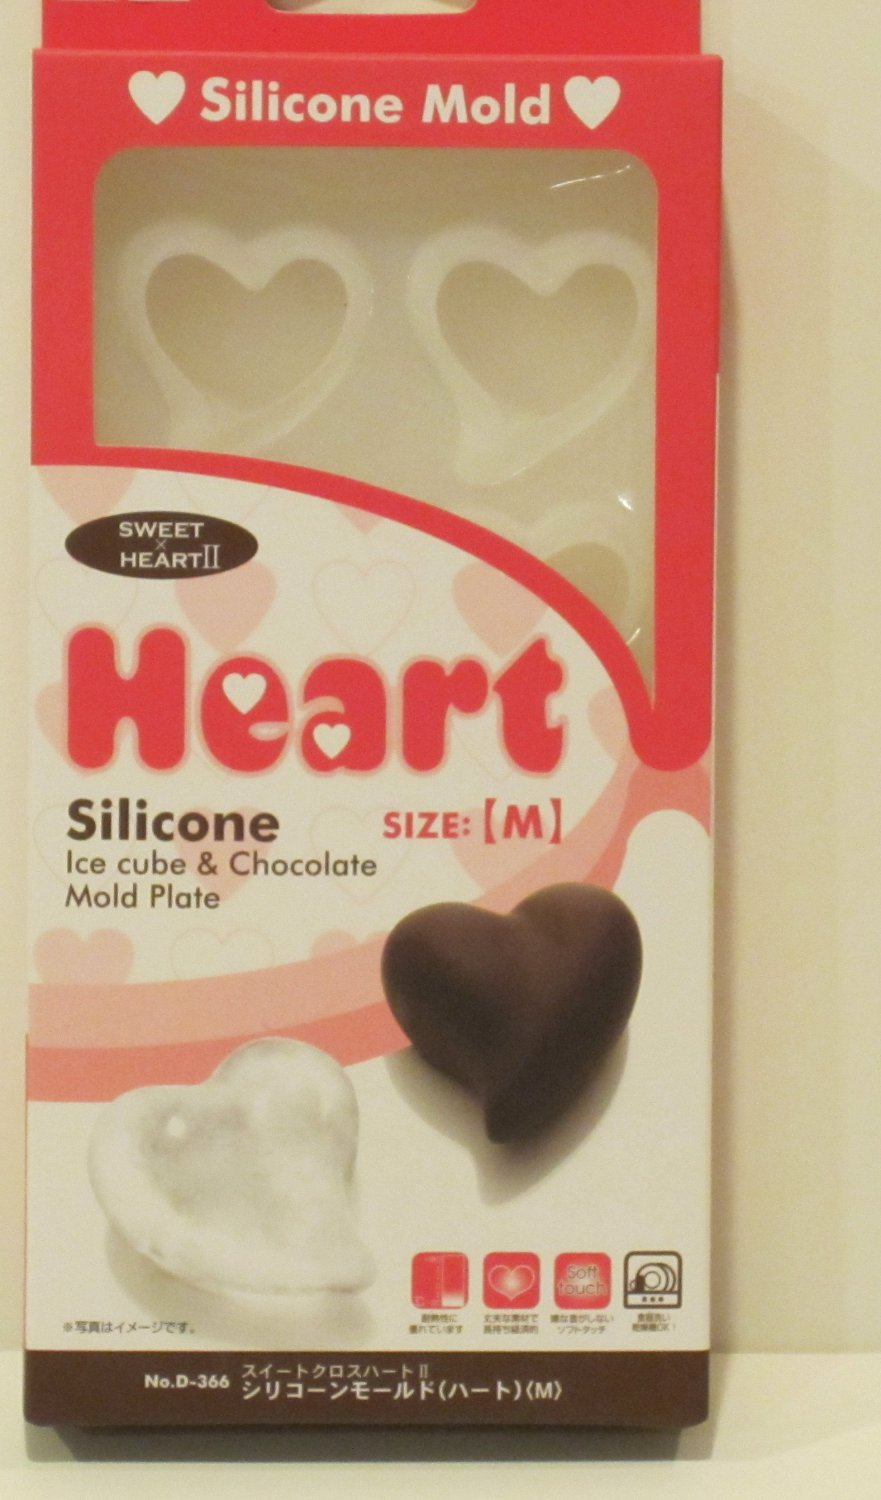 Silicone Ice Tray/Mold - Heart - for Ice, Coffee, or Chocolate